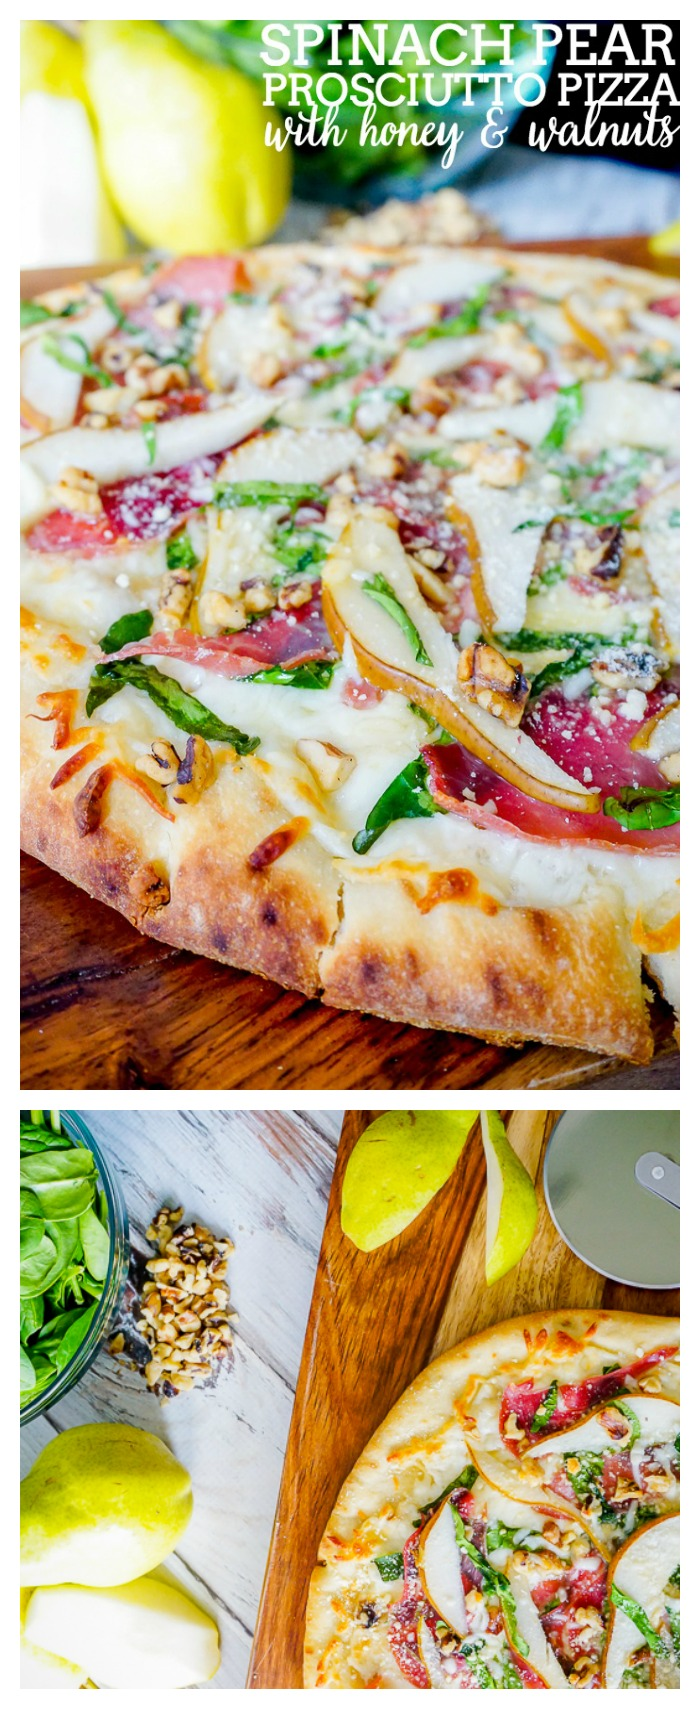 Spinach Pear Prosciutto Pizza with Honey and Walnuts is my favorite flatbread recipe so far! It's easy to make but will make quite the impression!   The Love Nerds